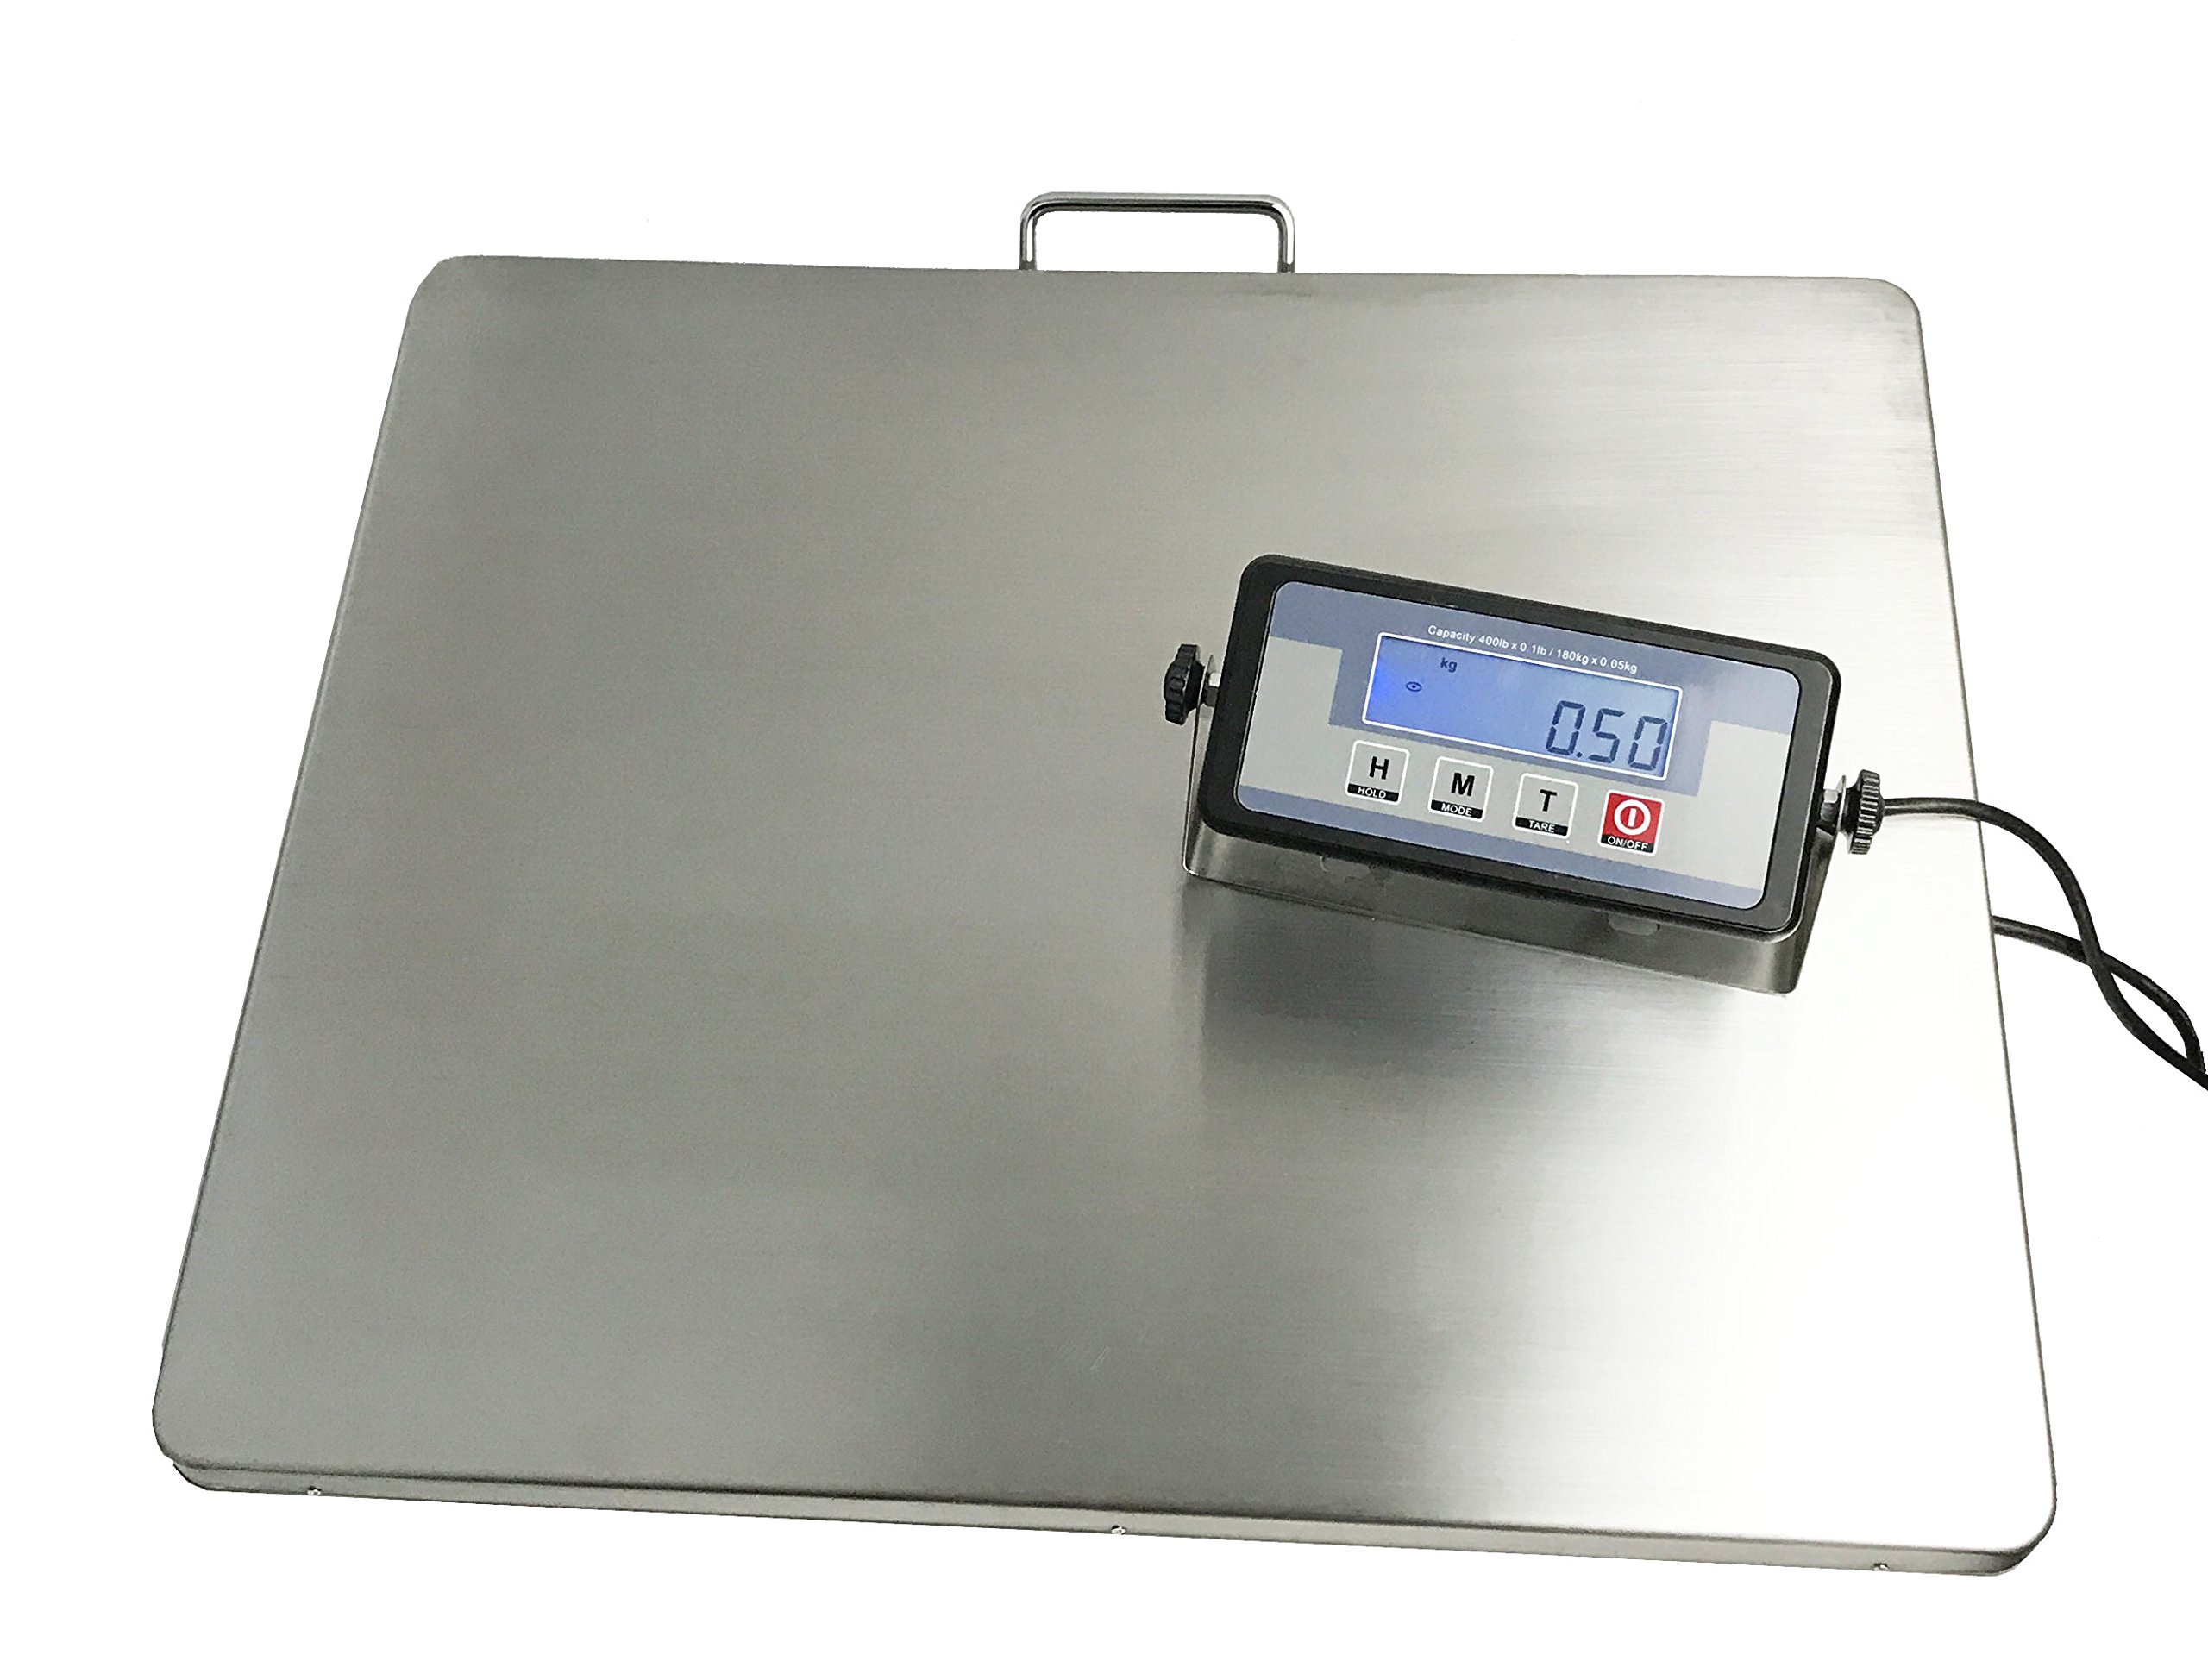 Angel USA Extra Large Platform 22'' x 18'' Stainless Steel 400lb Heavy Duty Digital Postal Shipping Scale, Powered by Batteries or AC Adapter, Great for Floor Bench Office Weight Weighing